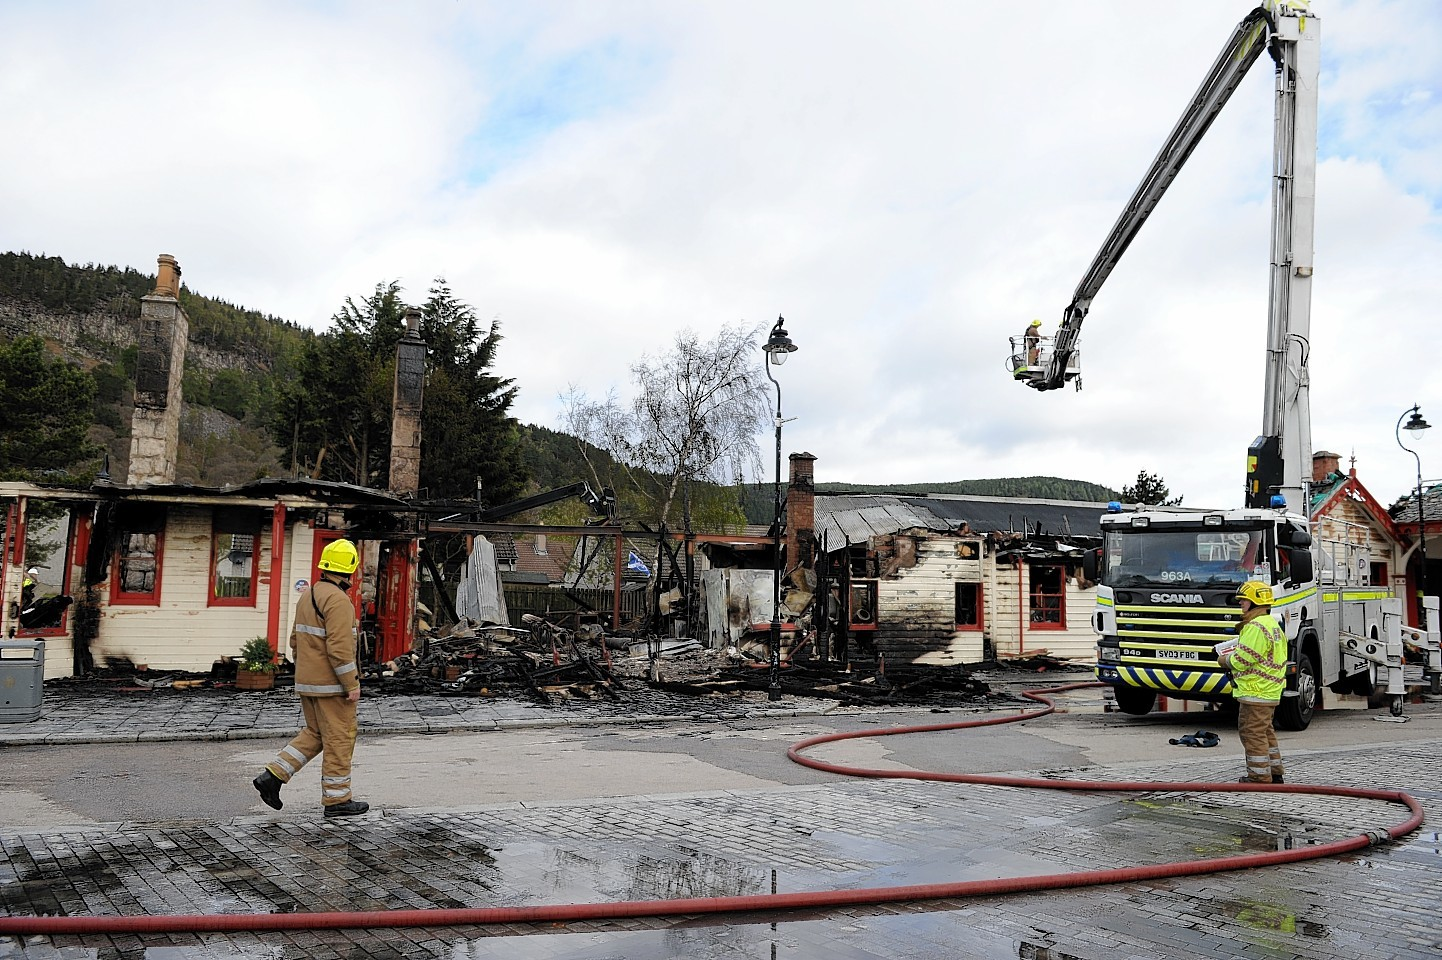 Scottish Fire and Rescue attend a fire at the old Royal Railway station at Ballater